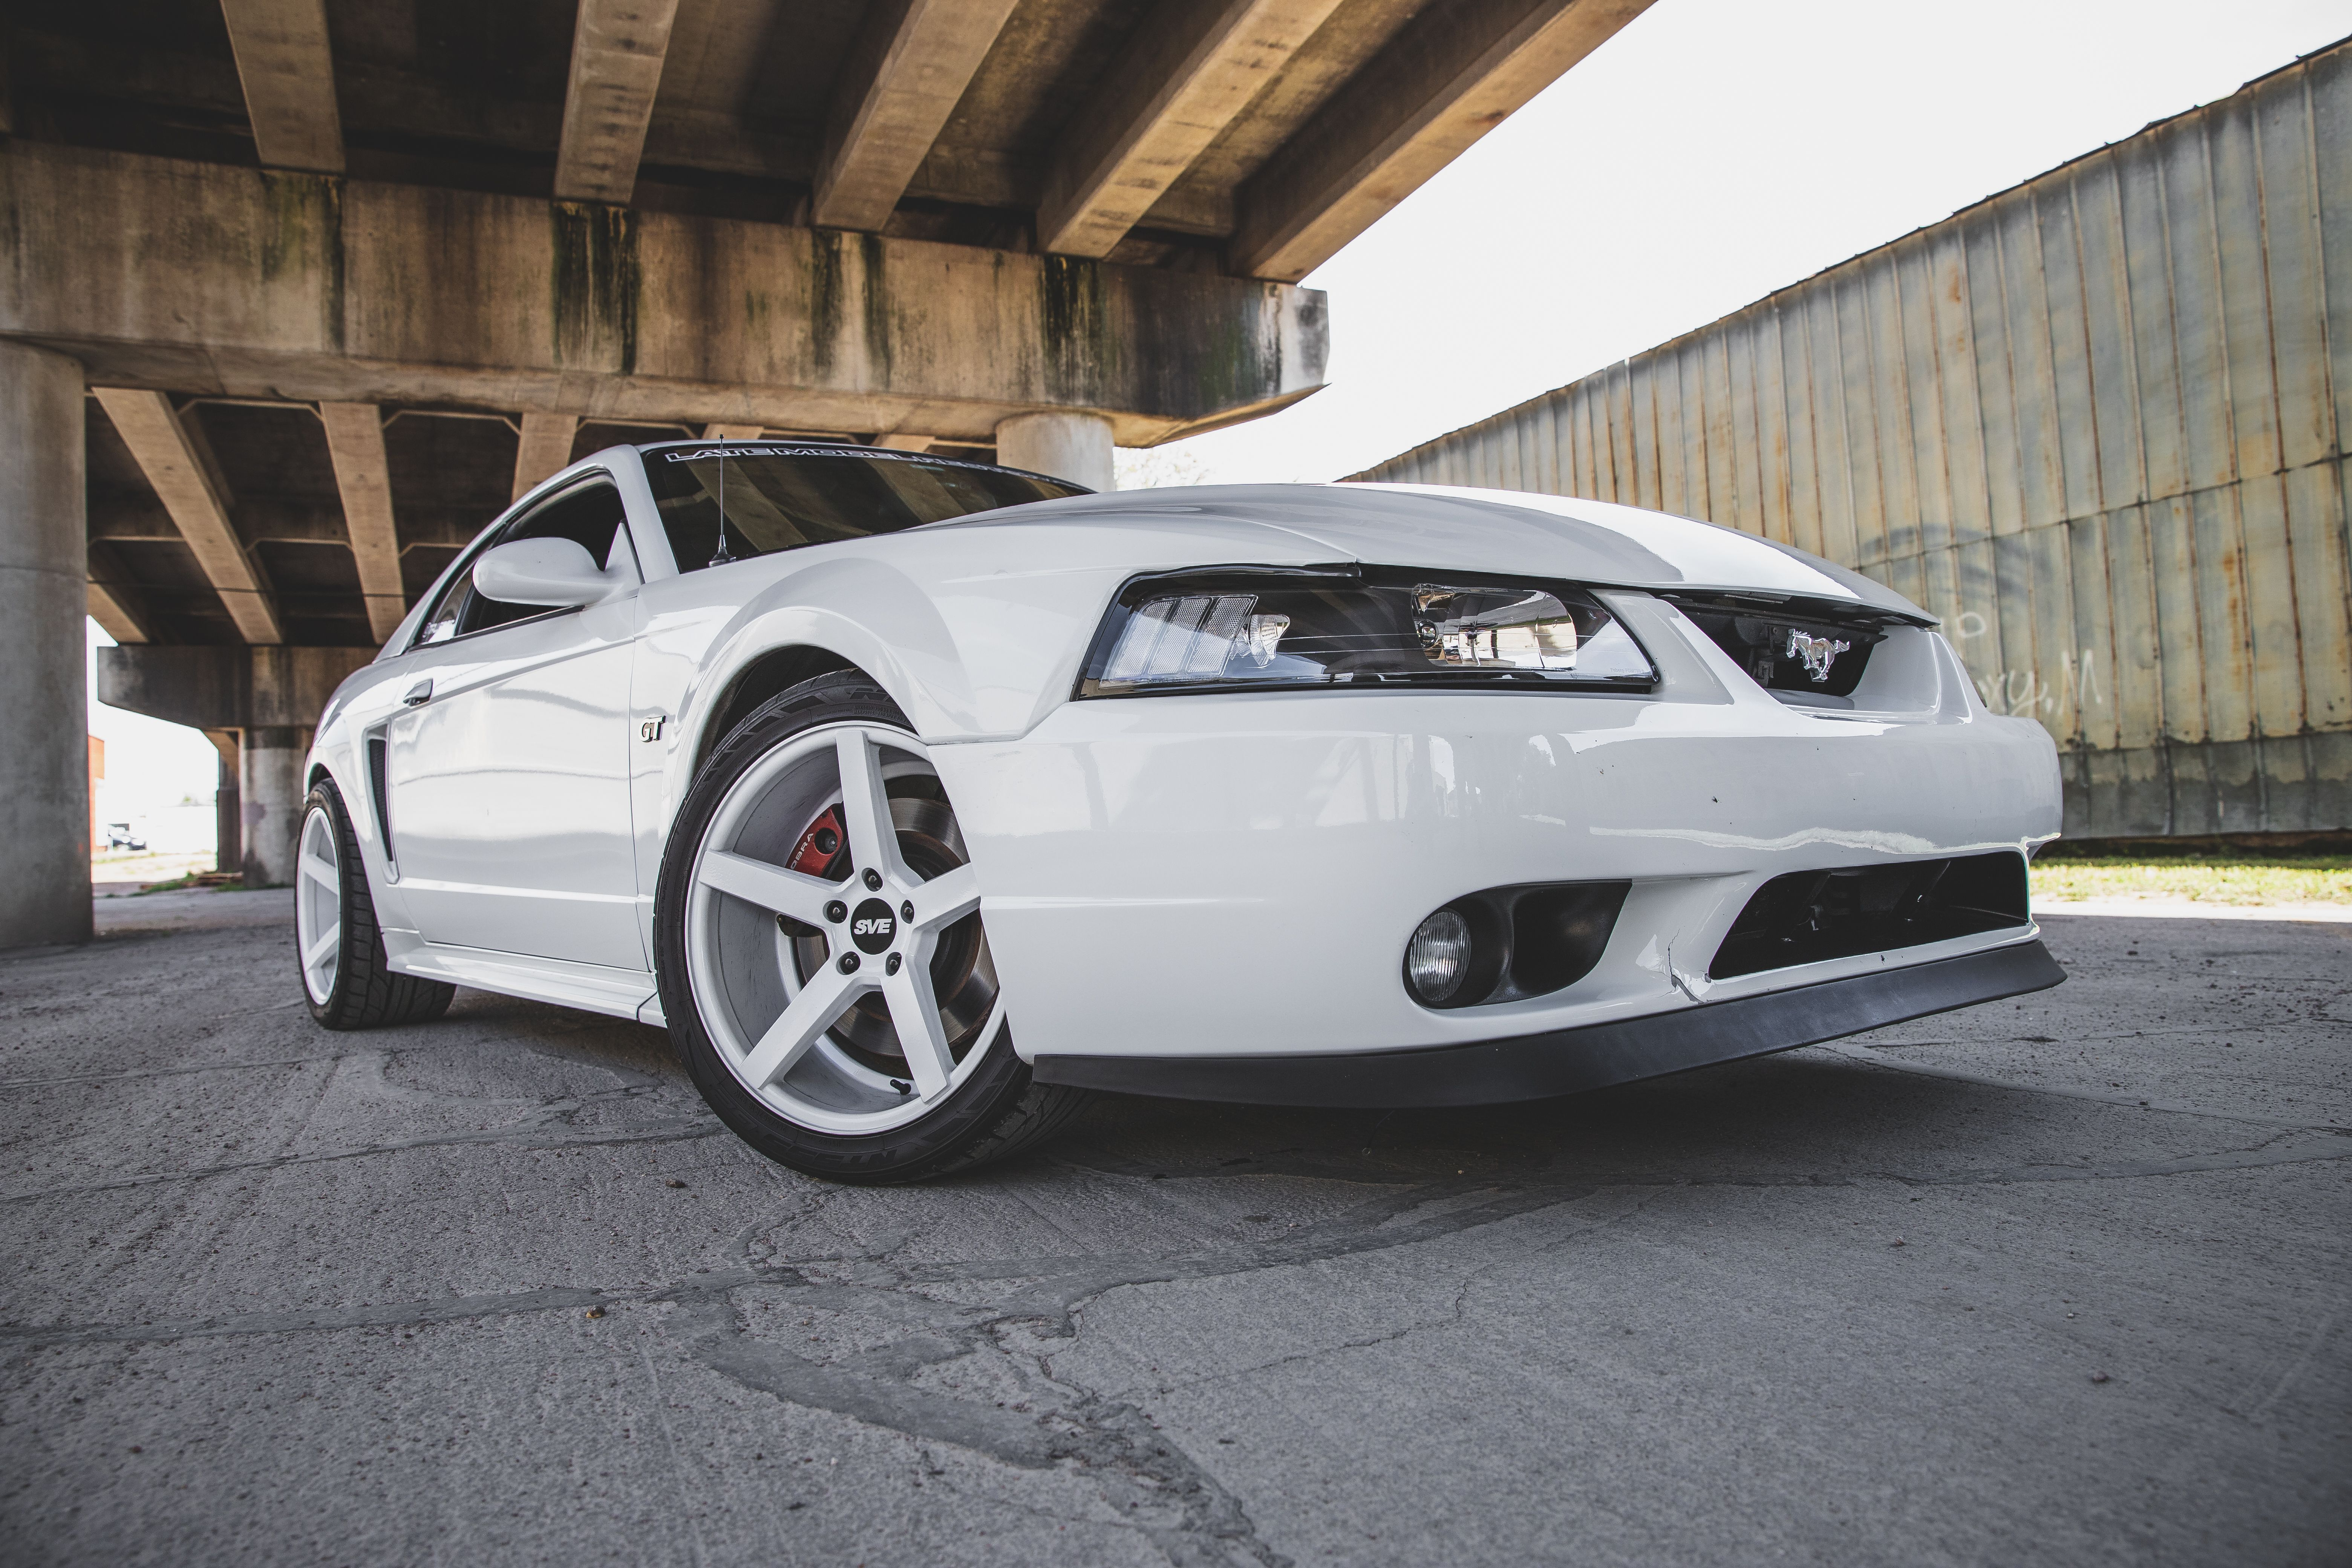 How To Coyote Swap A New Edge Mustang - How To Coyote Swap A New Edge Mustang